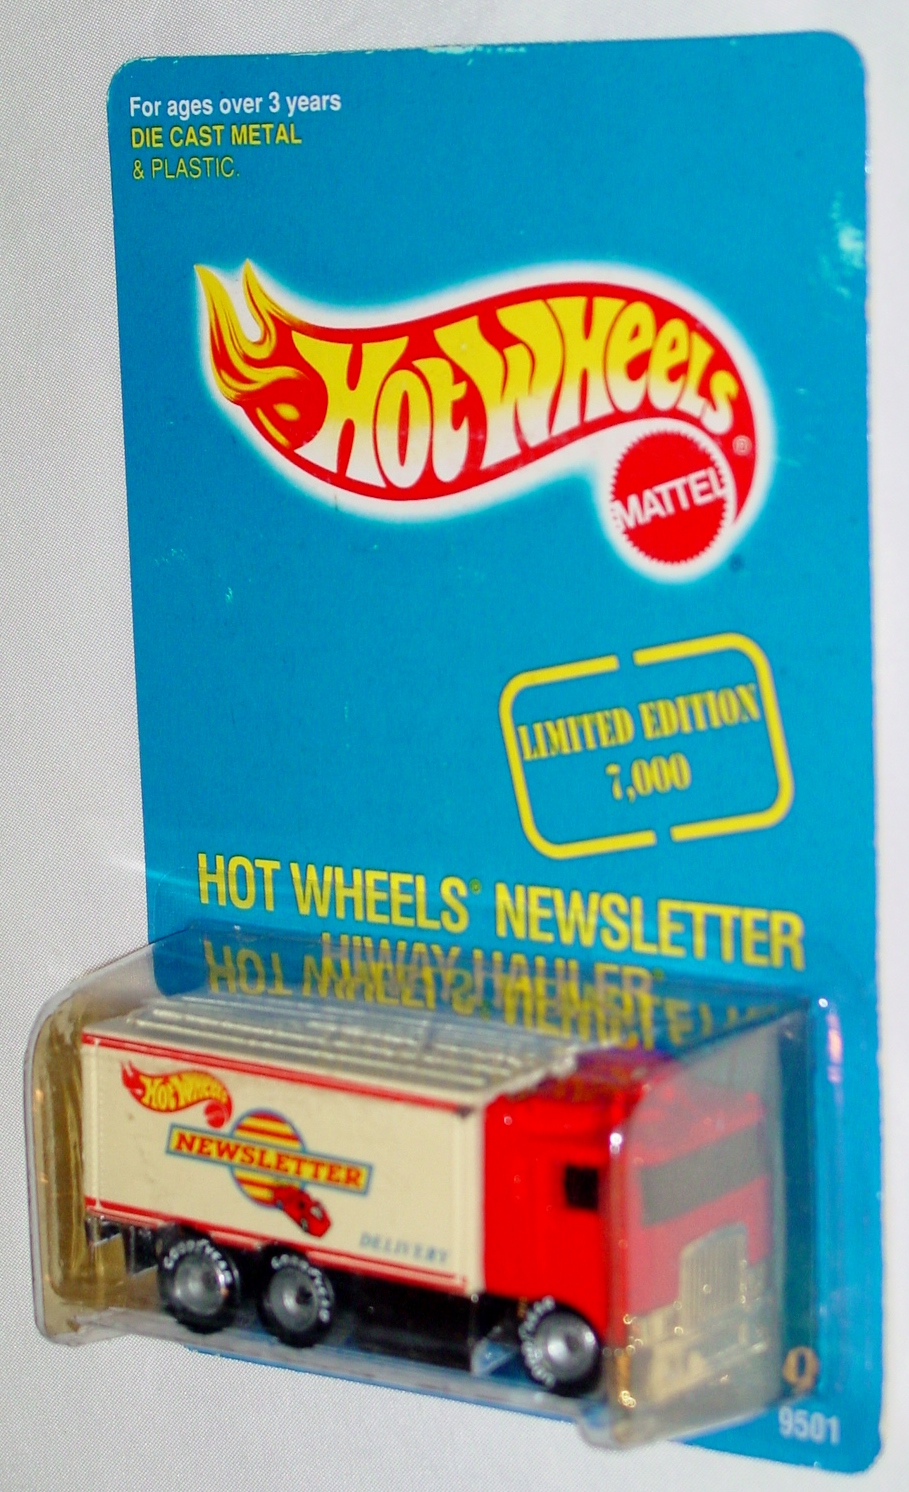 New Hot Wheels - HIWAY HAULER Hot Wheels Newsletter Red and white